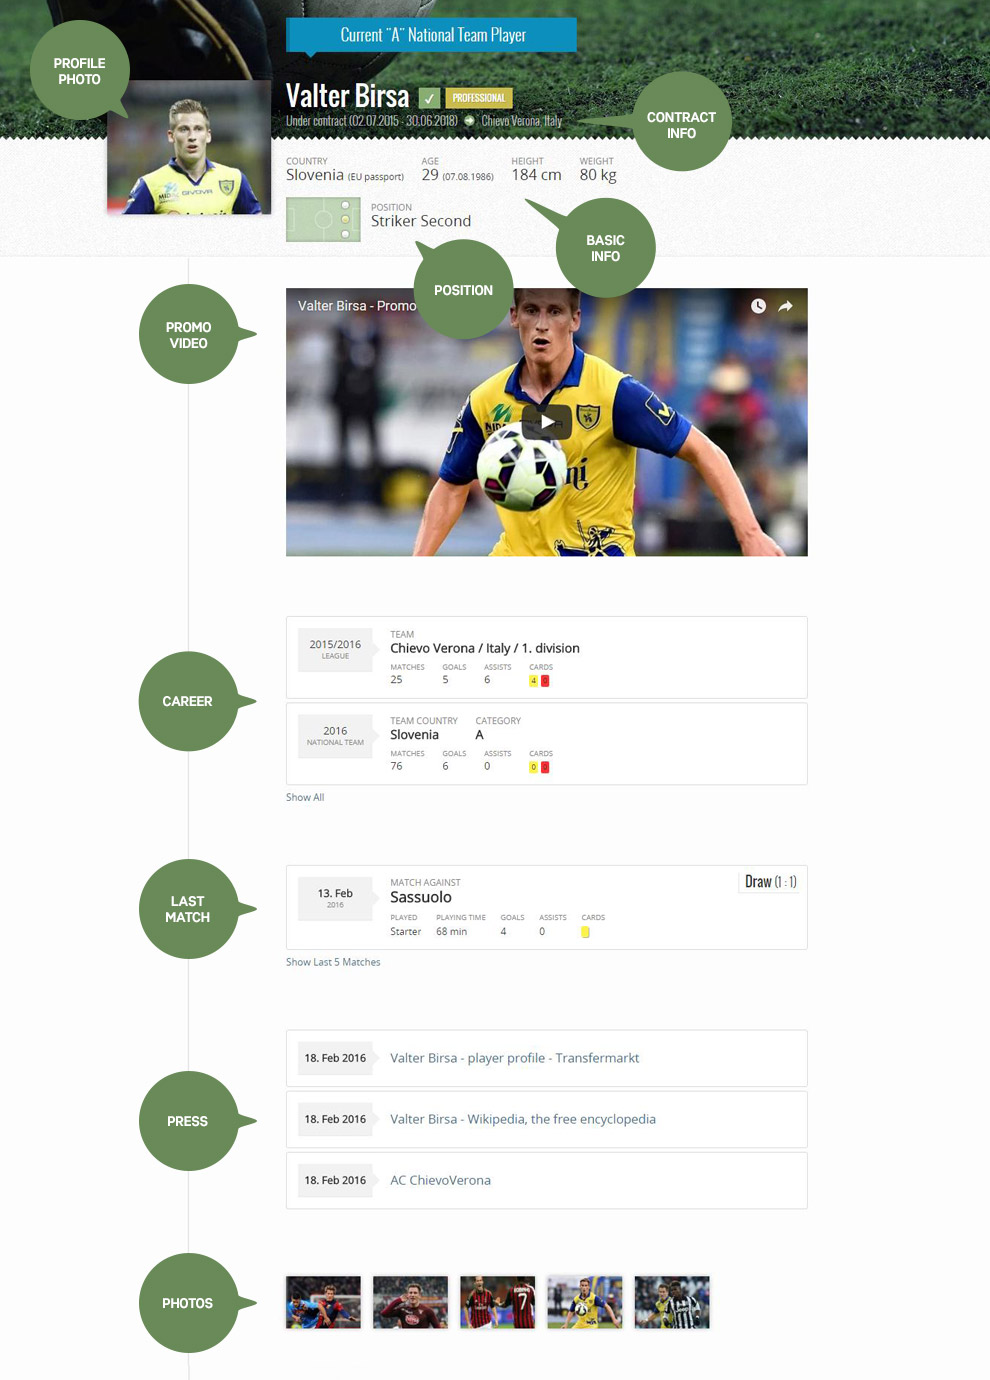 fieldoo profile is your football cv profile_explanation